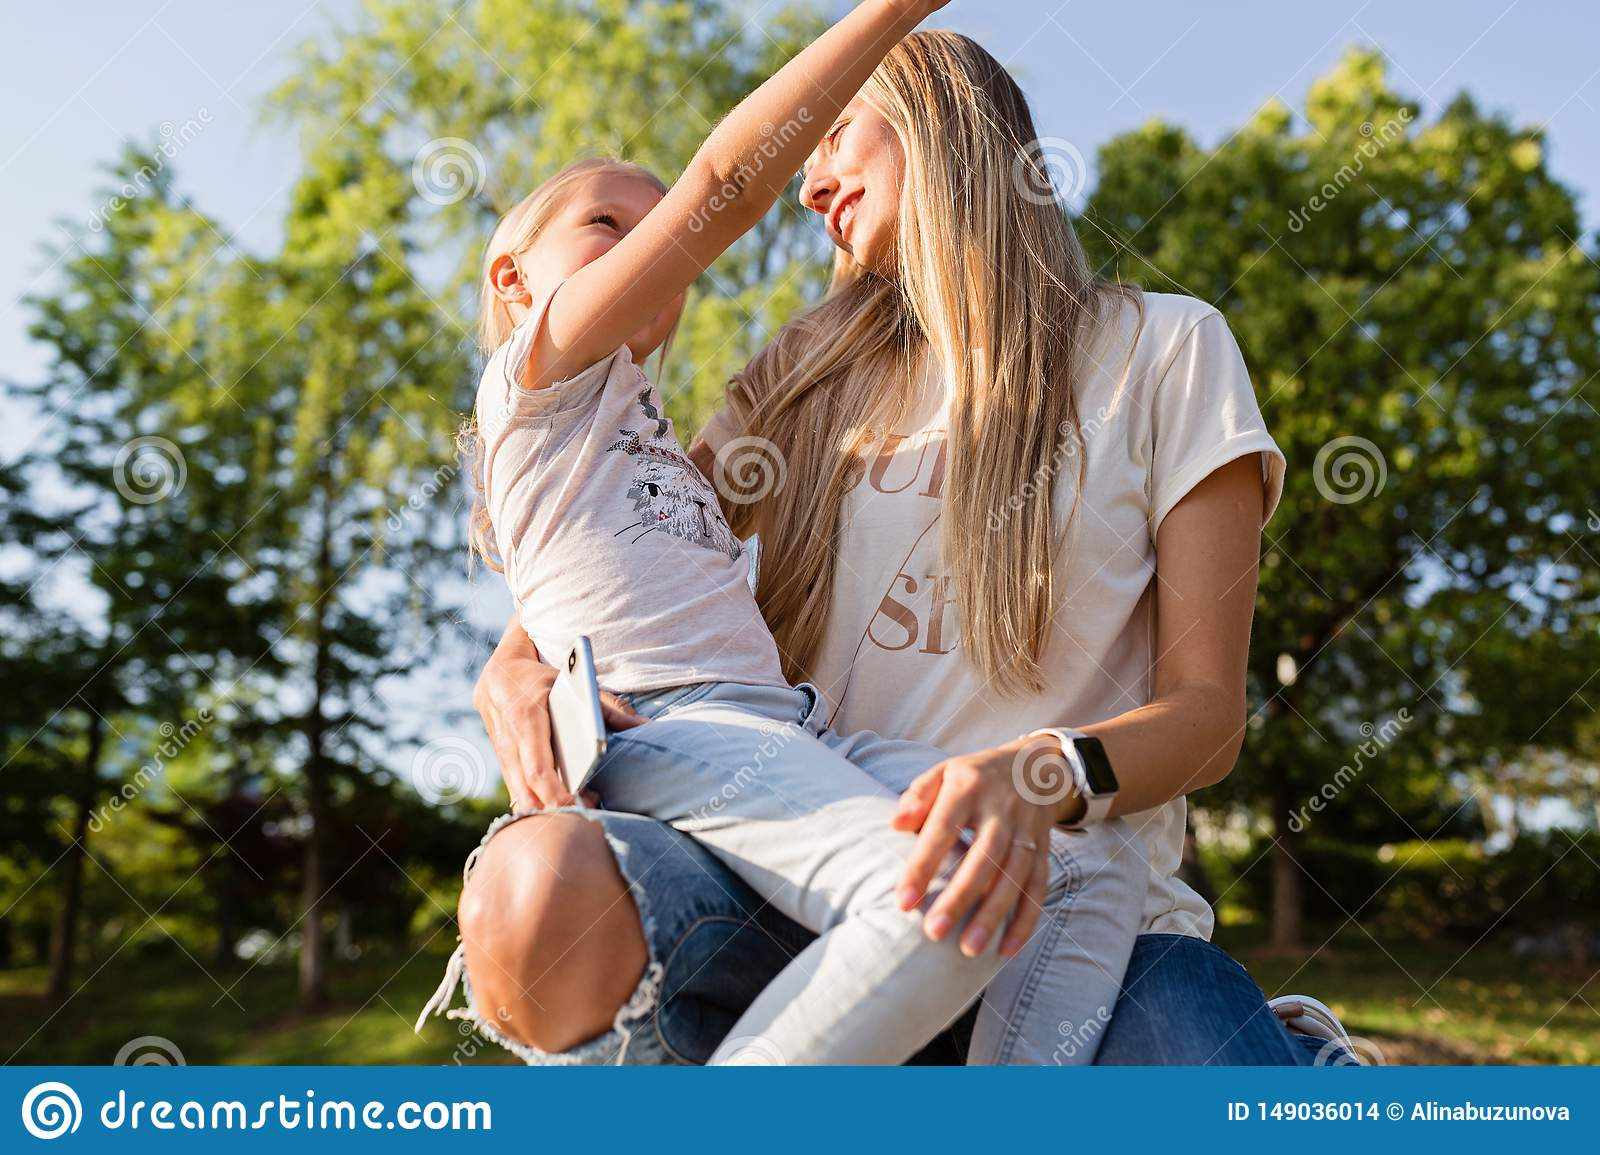 Beautiful young mother and daughter with blonde hair embracing outdoor. Stylish girls making walking in the park. Family concept